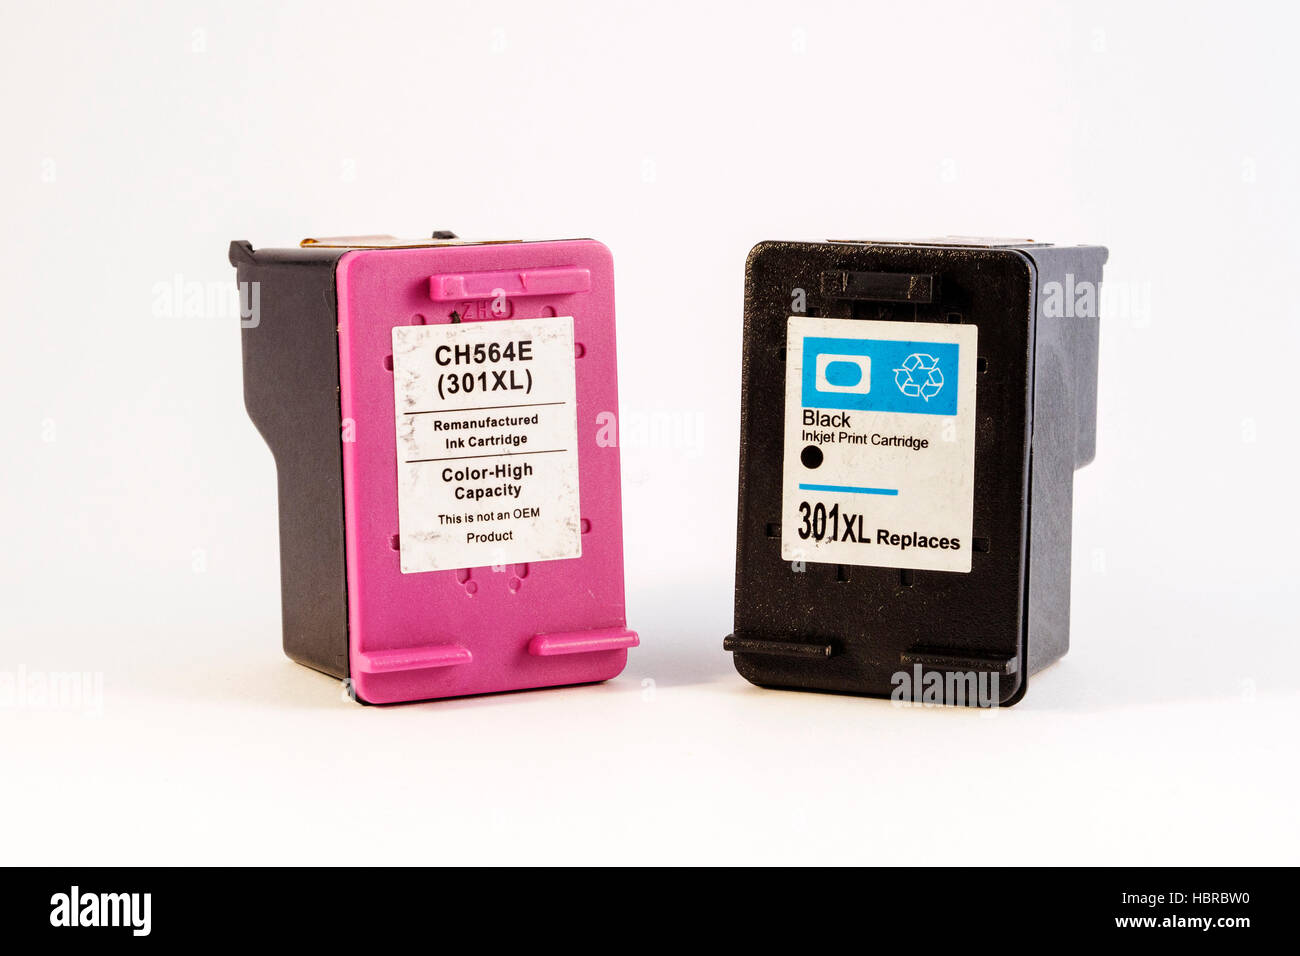 Re-manufactured and compatible ink cartridges can save the consumer money. - Stock Image